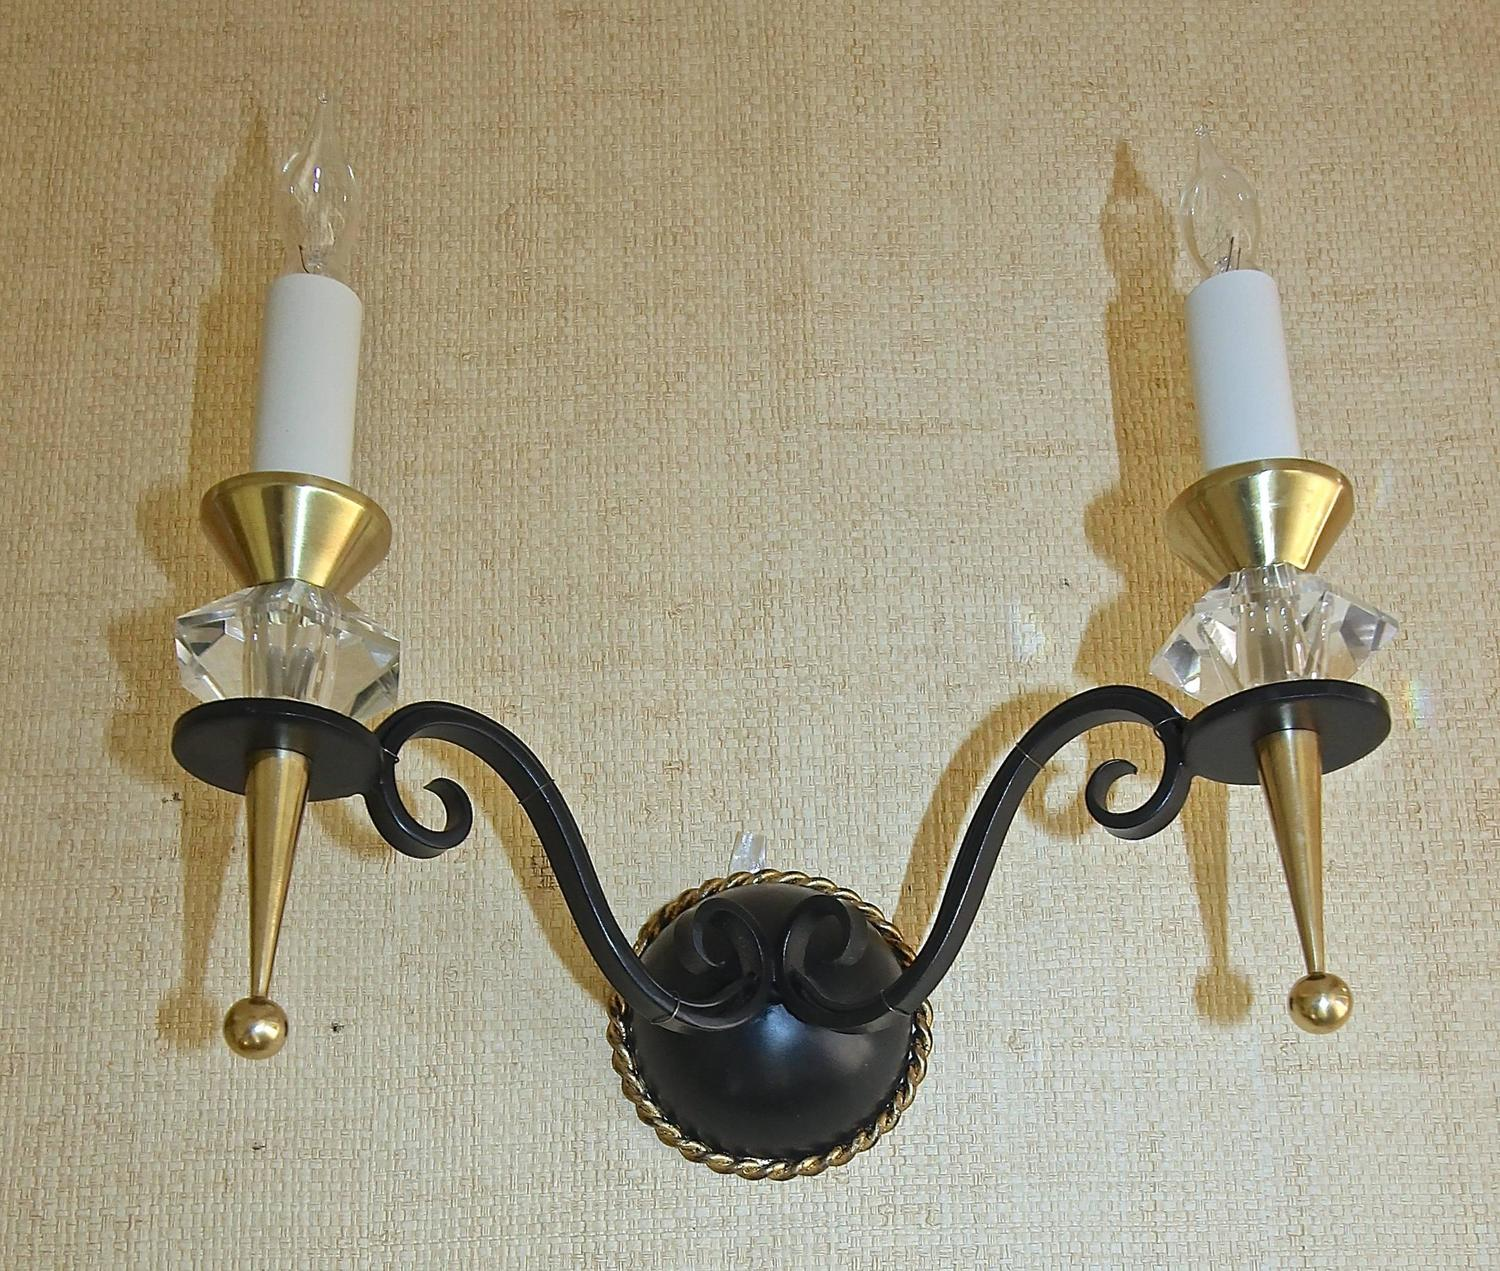 Pair French Leleu Art Deco Brass Crystal and Painted Iron Sconces For Sale at 1stdibs